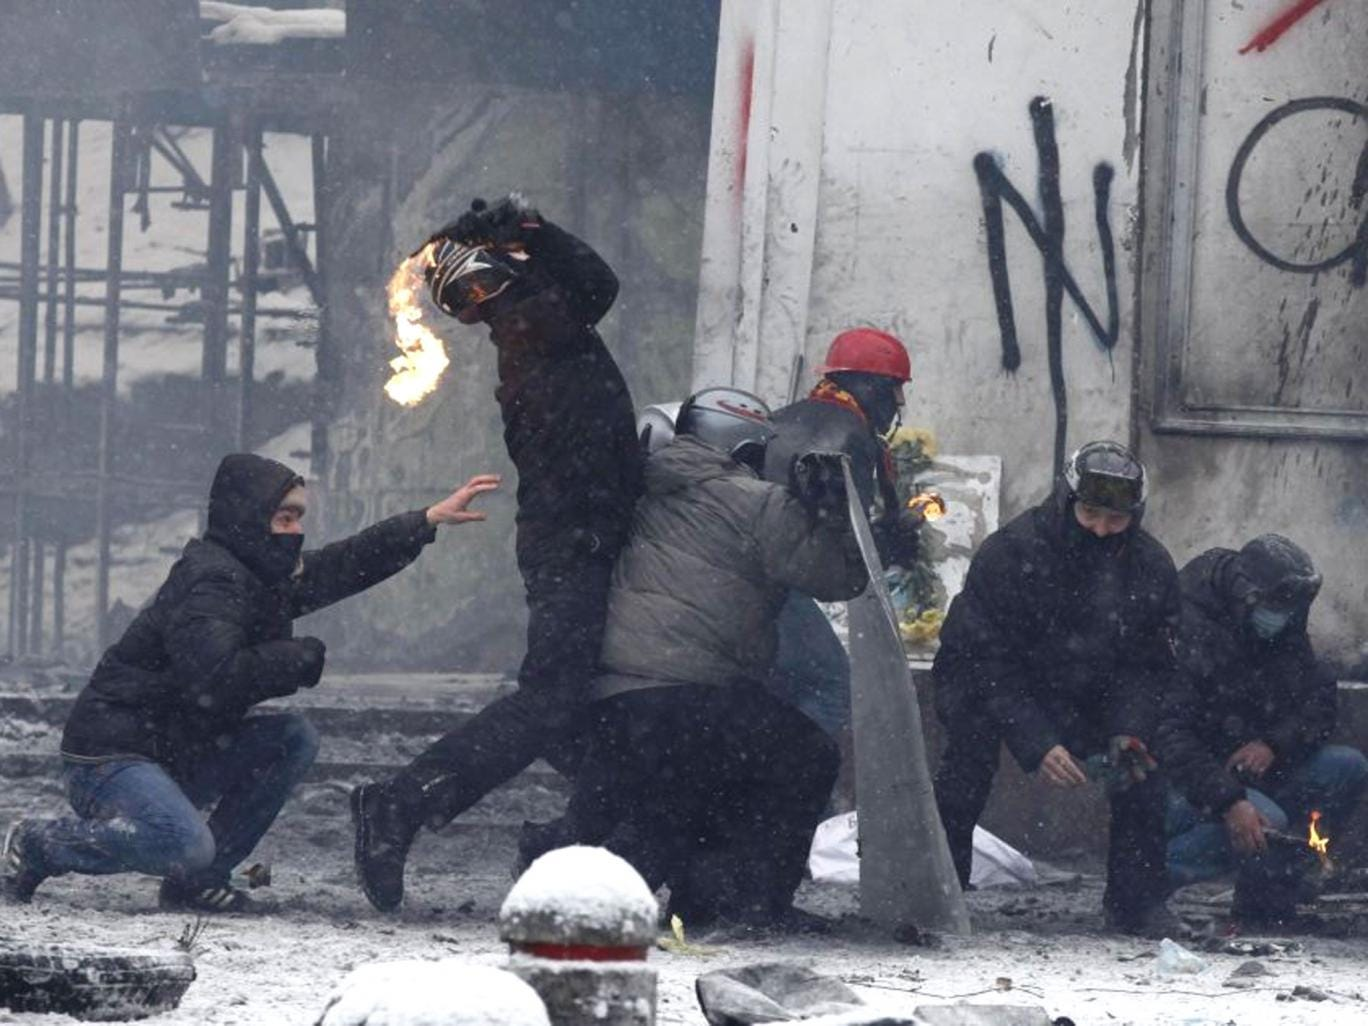 A pro-European protester throws a Molotov cocktail towards riot police during clashes in Kiev